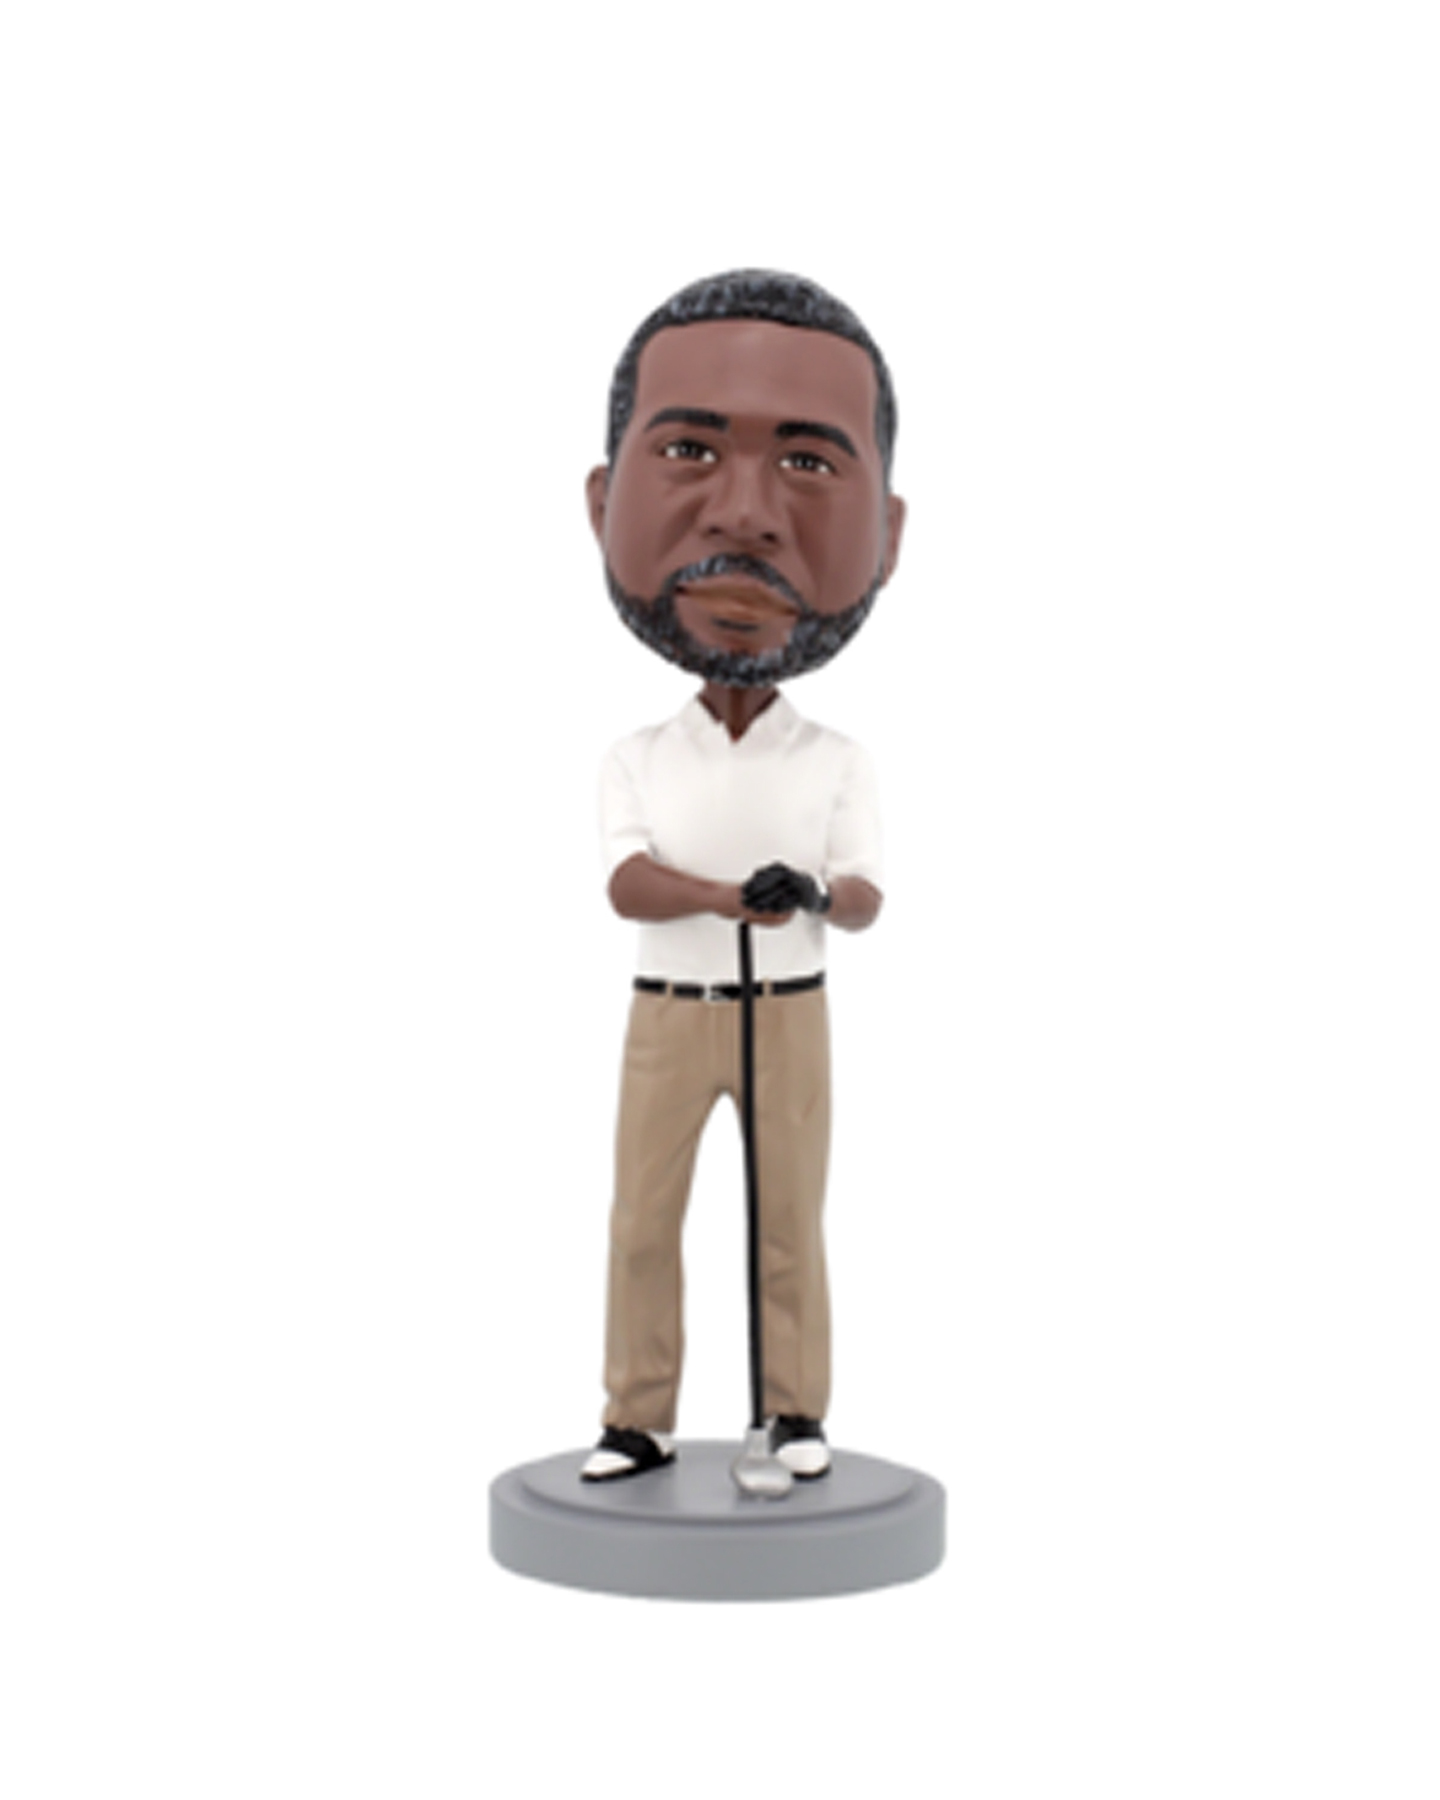 Funny gifts for men - Personalized Bobblehead